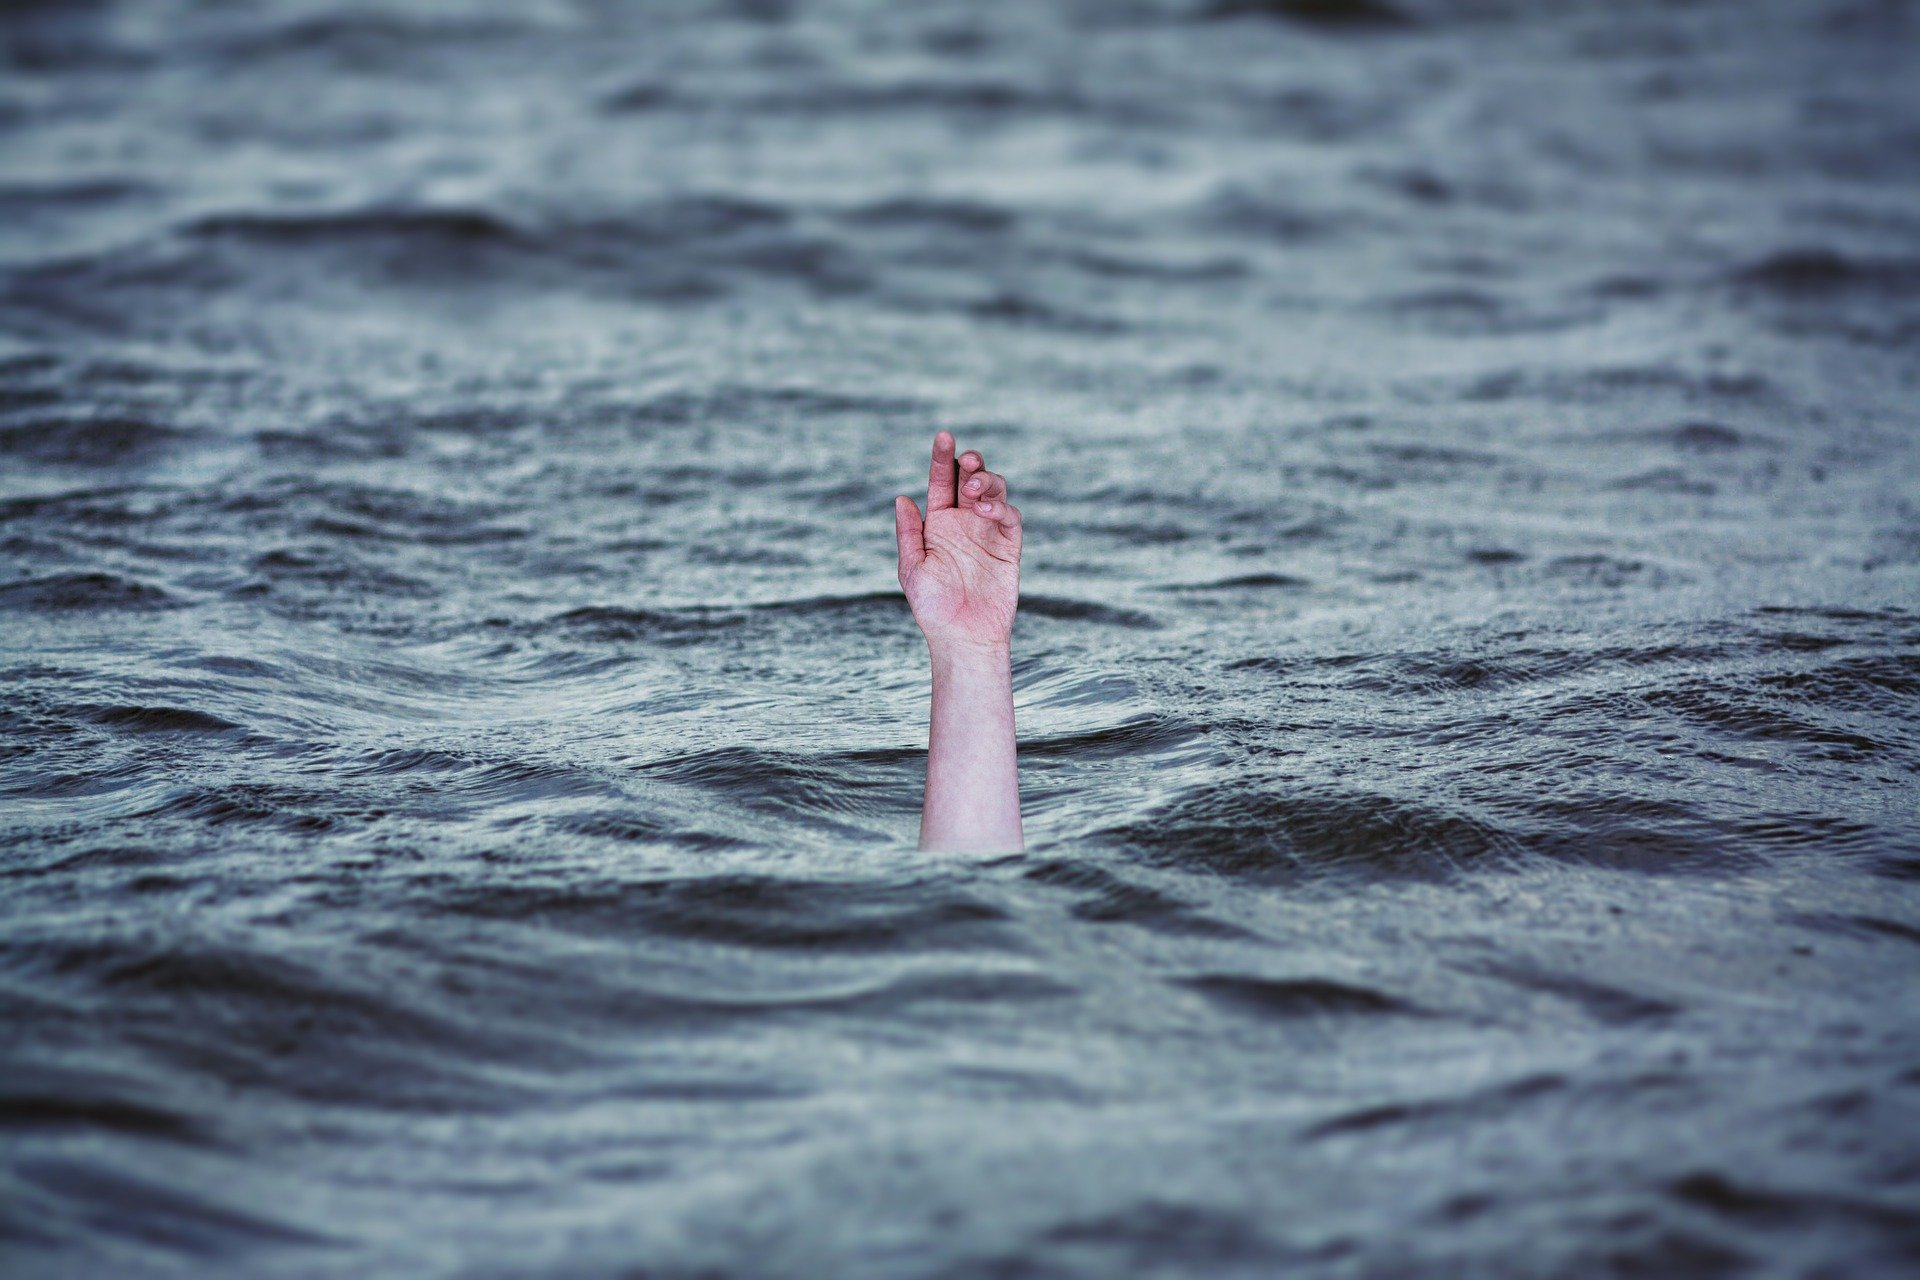 single hand drowning in the ocean